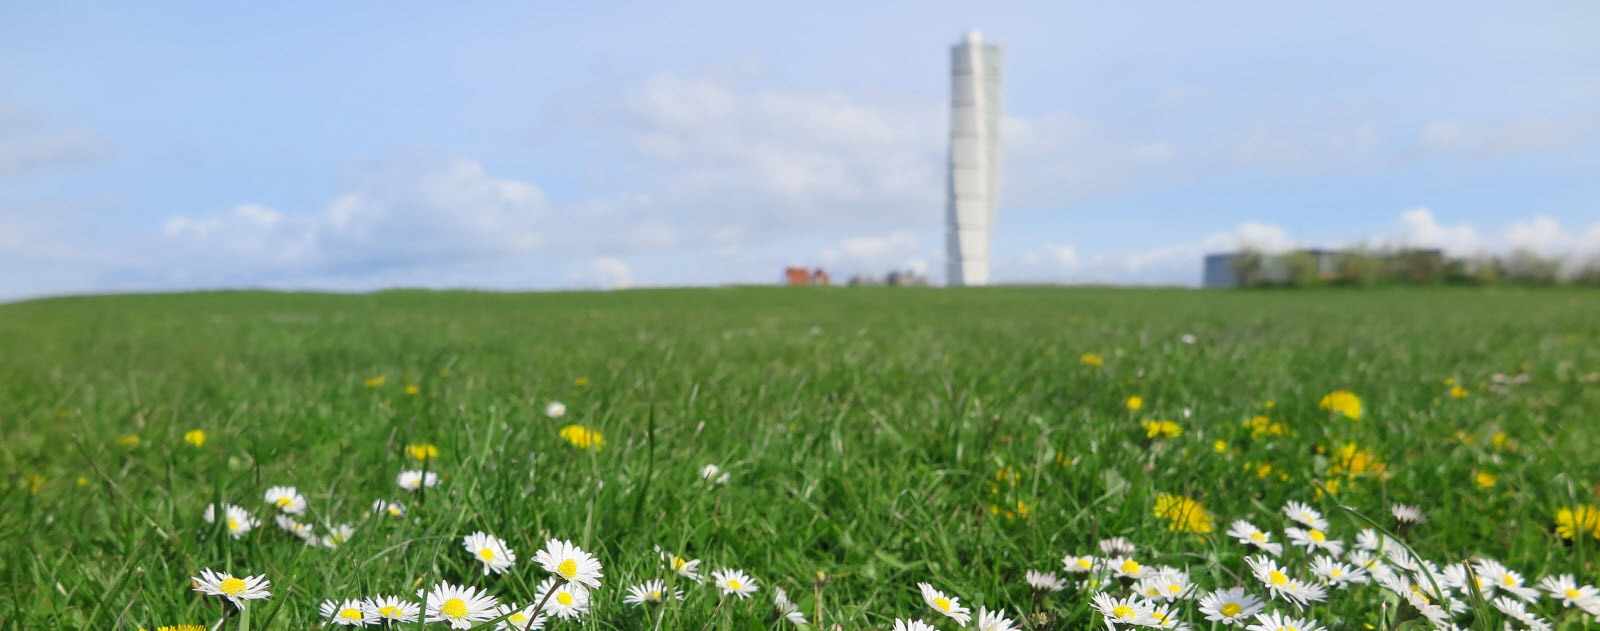 Sweden, Malmo. Field with Turning Torso in the background.